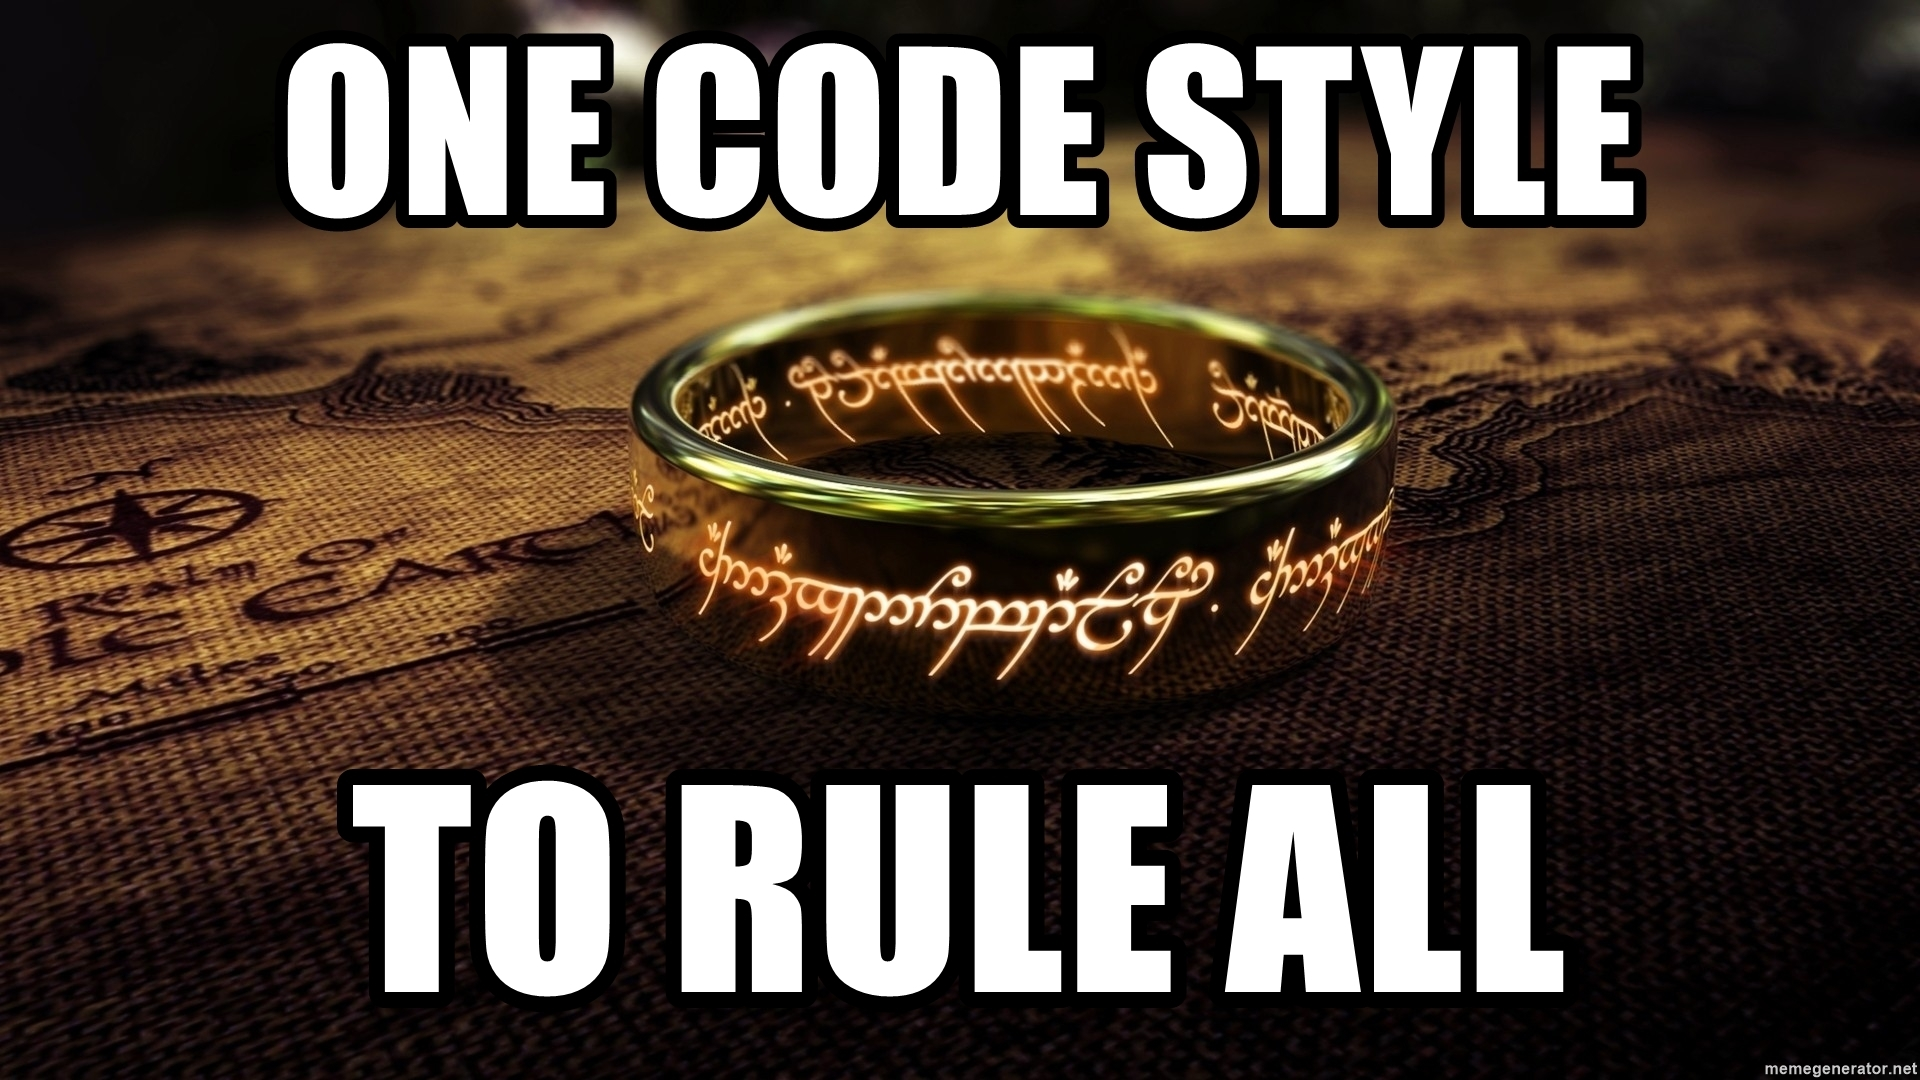 One code style to rule all